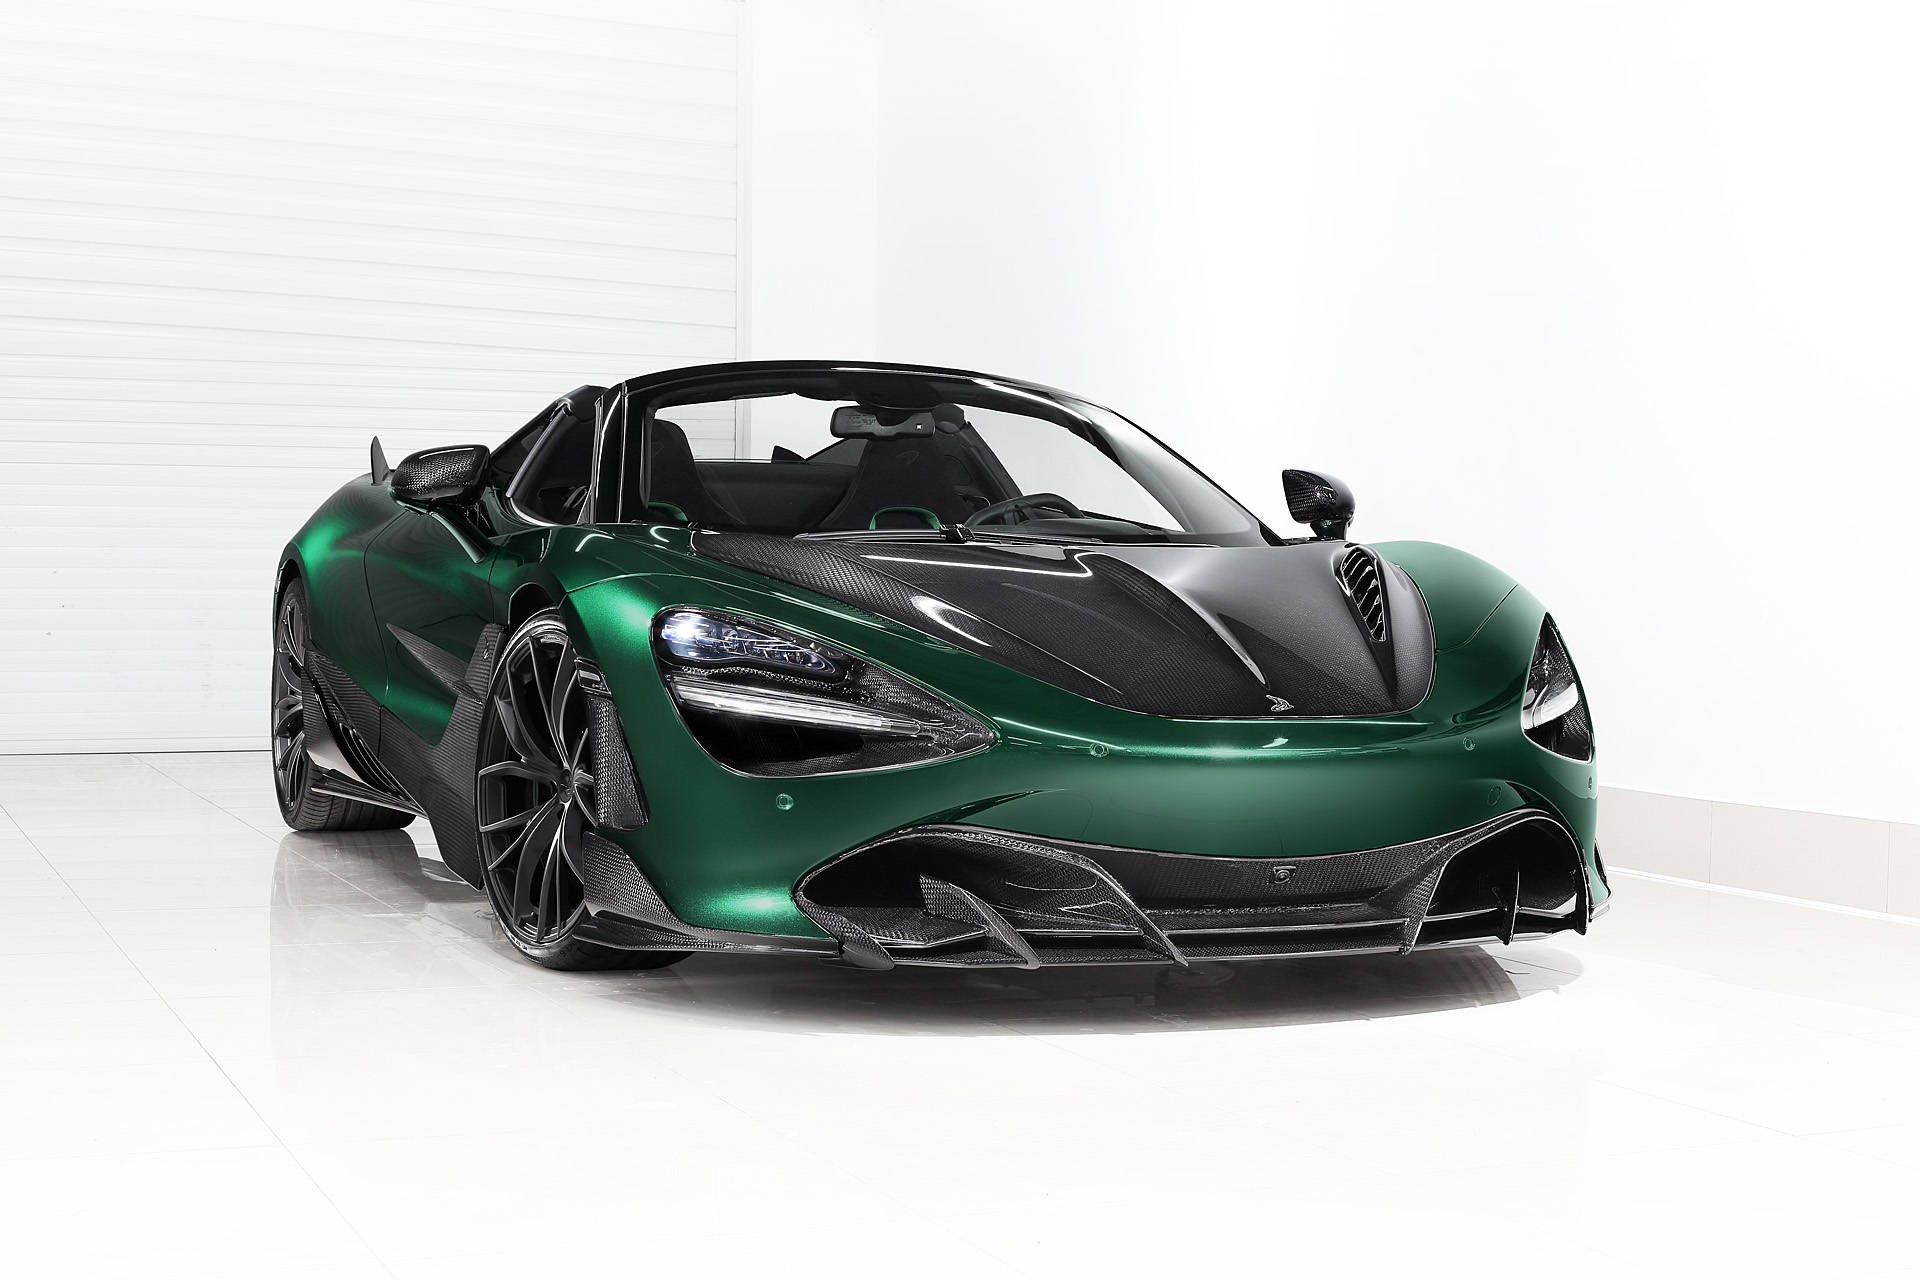 McLaren-720S-Spider-Fury-by-TopCar-for-sale-2